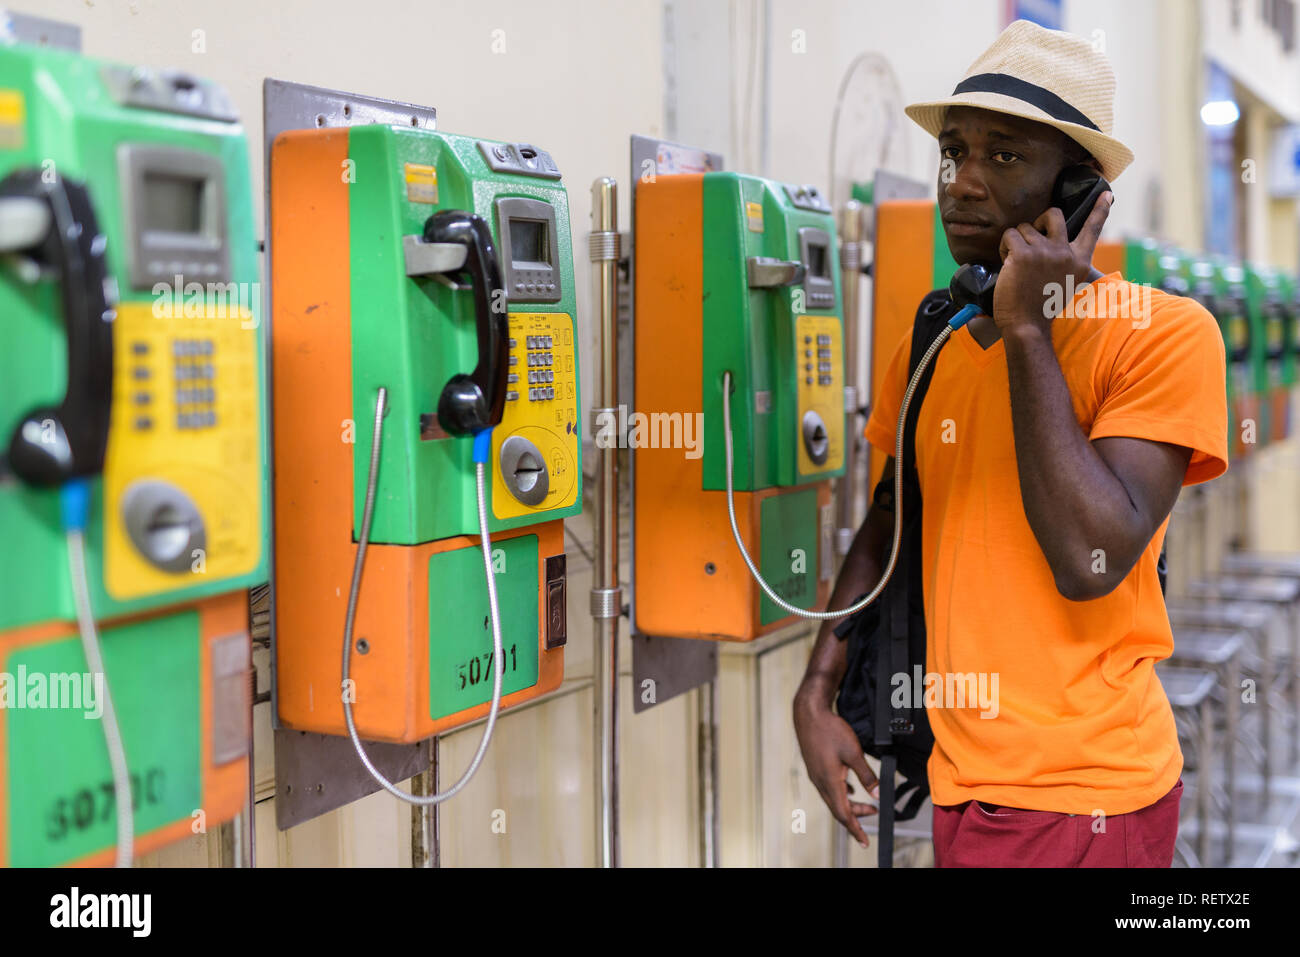 African tourist man talking on payphone and thinking - Stock Image